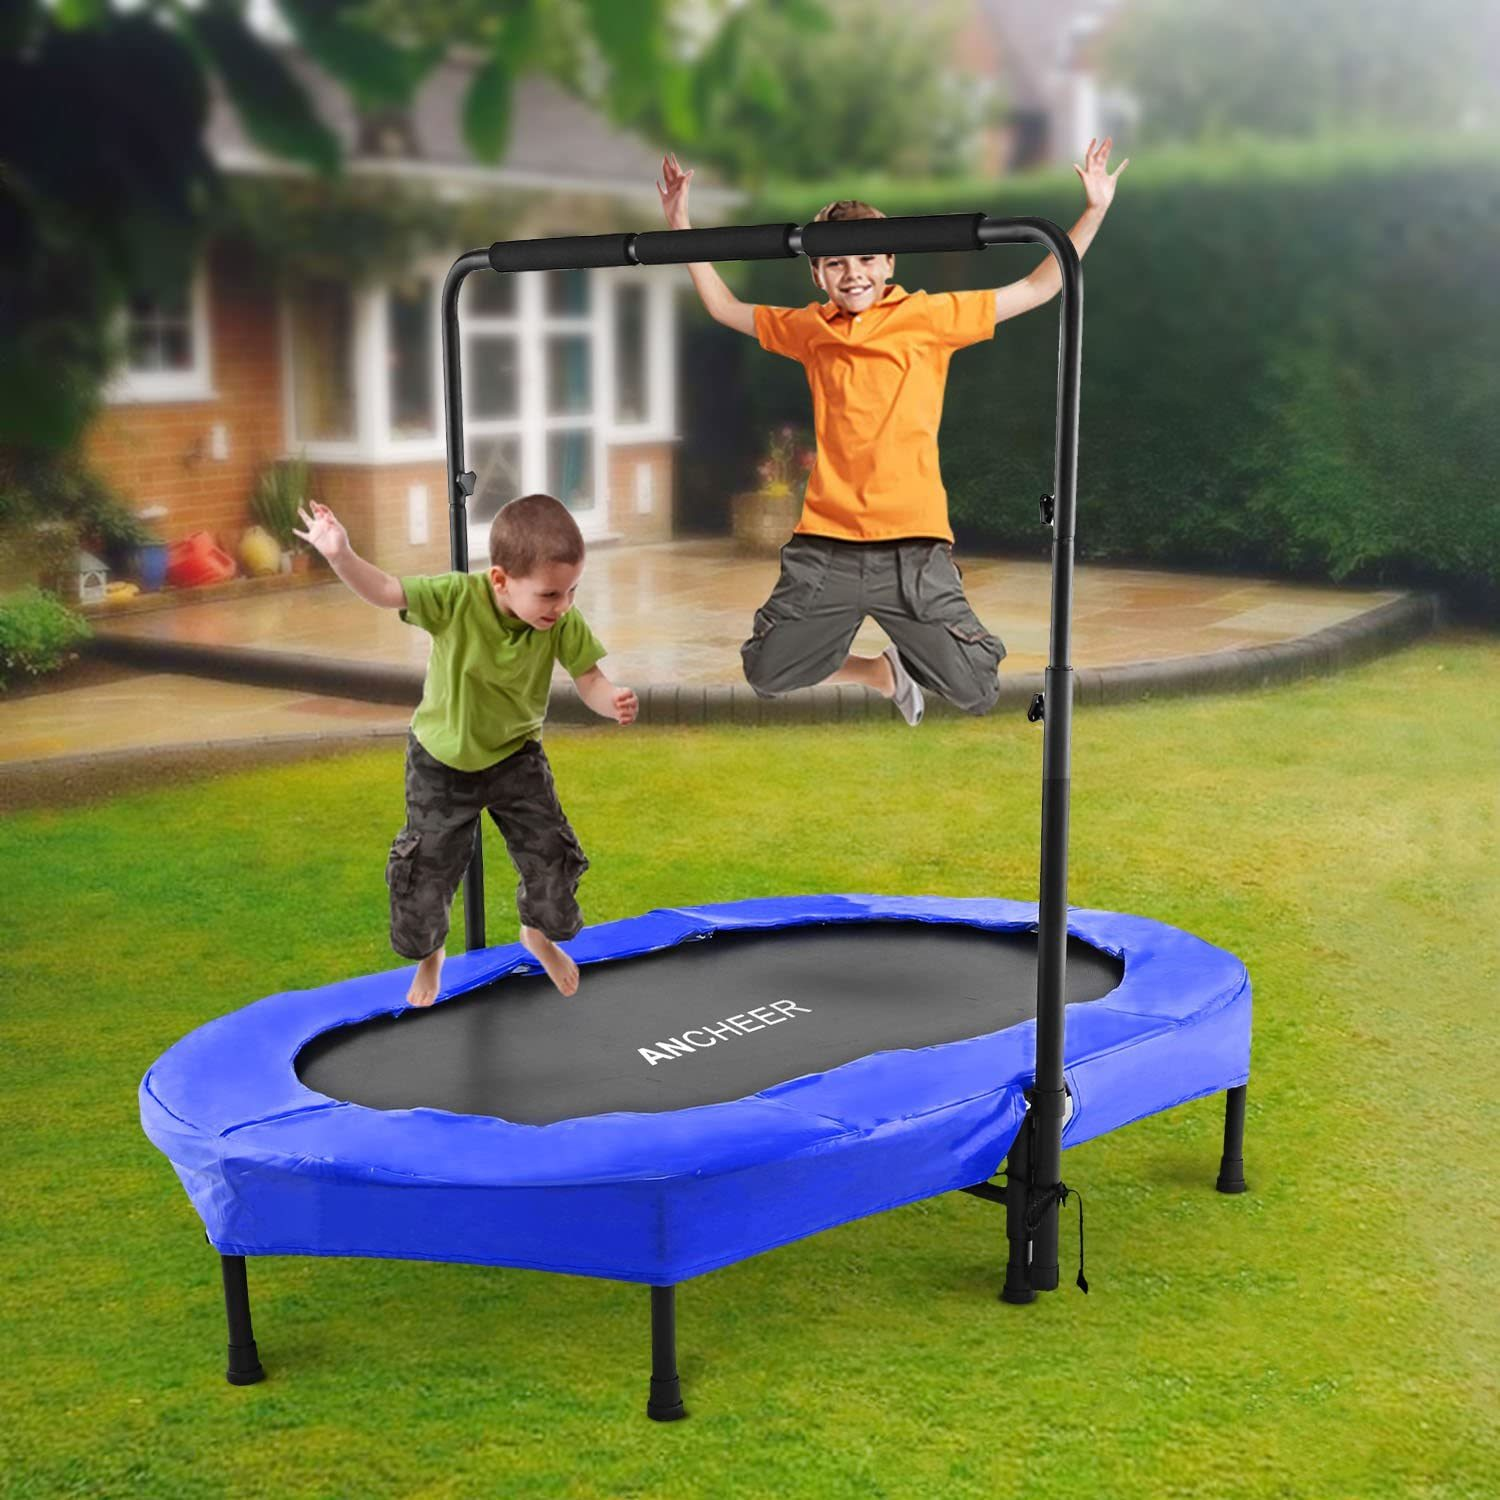 Mini Rebounder Trampoline with Adjustable Handle for Two Kids, Parent-Child Trampoline